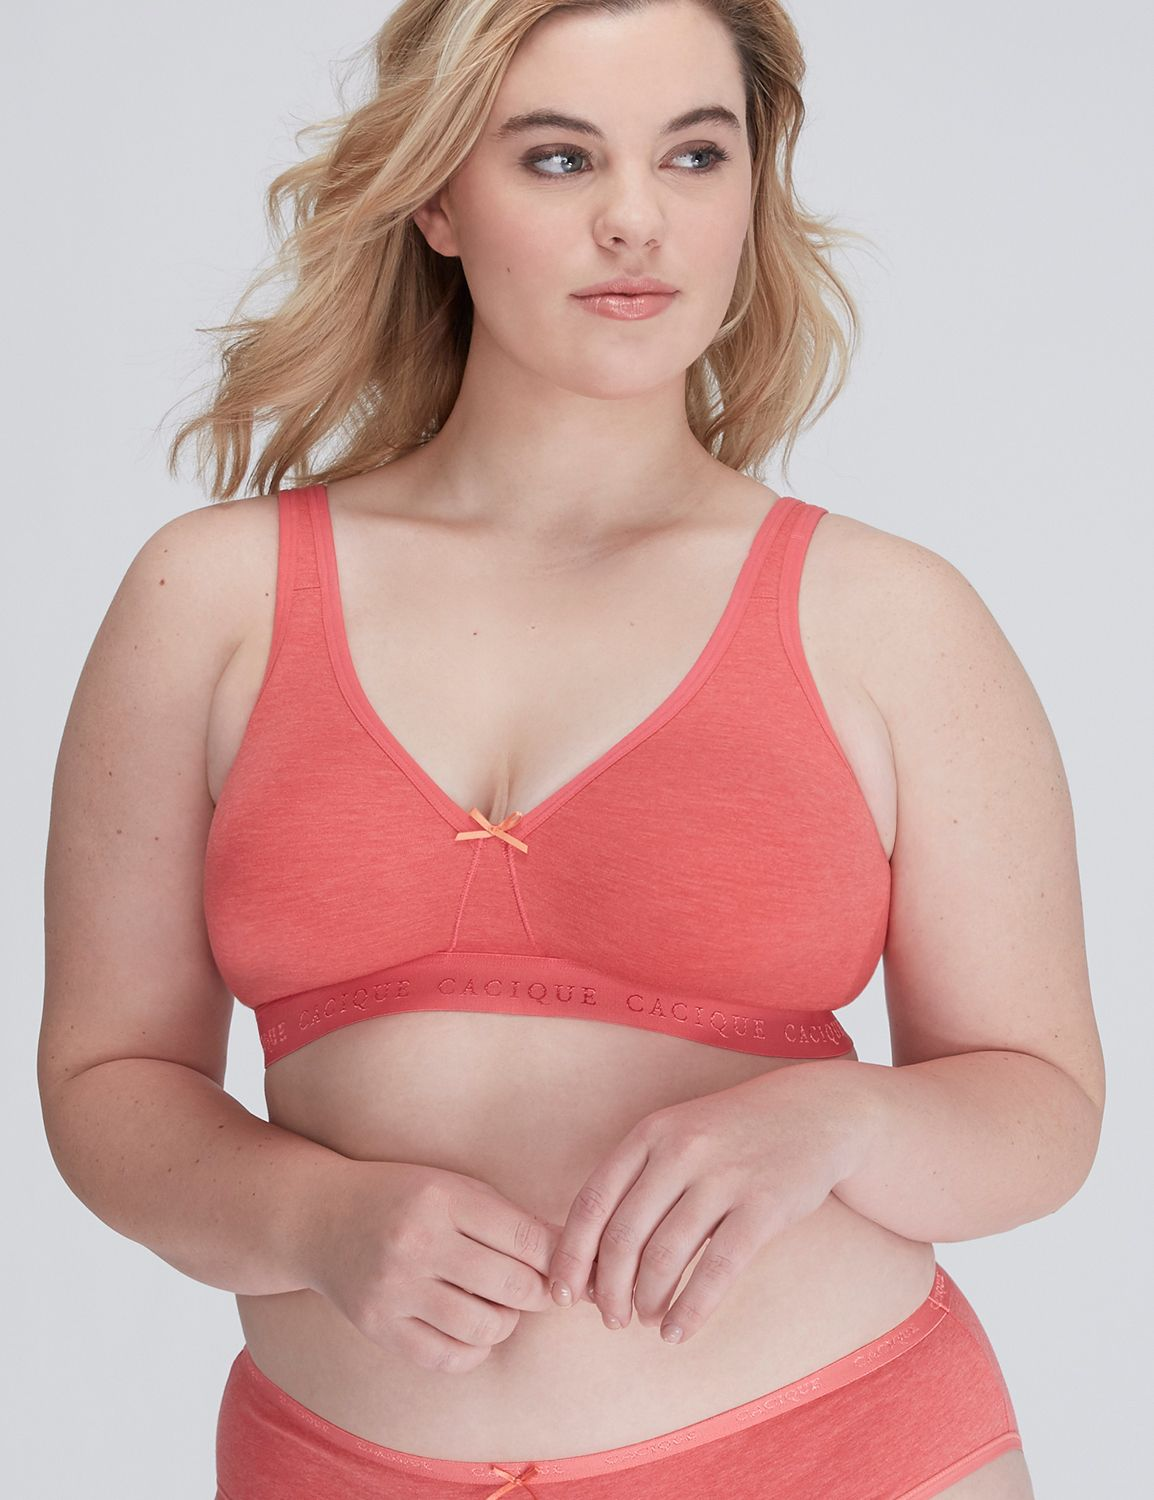 Lane Bryant Womens Cotton No Wire Bra 42C Paradise Pink